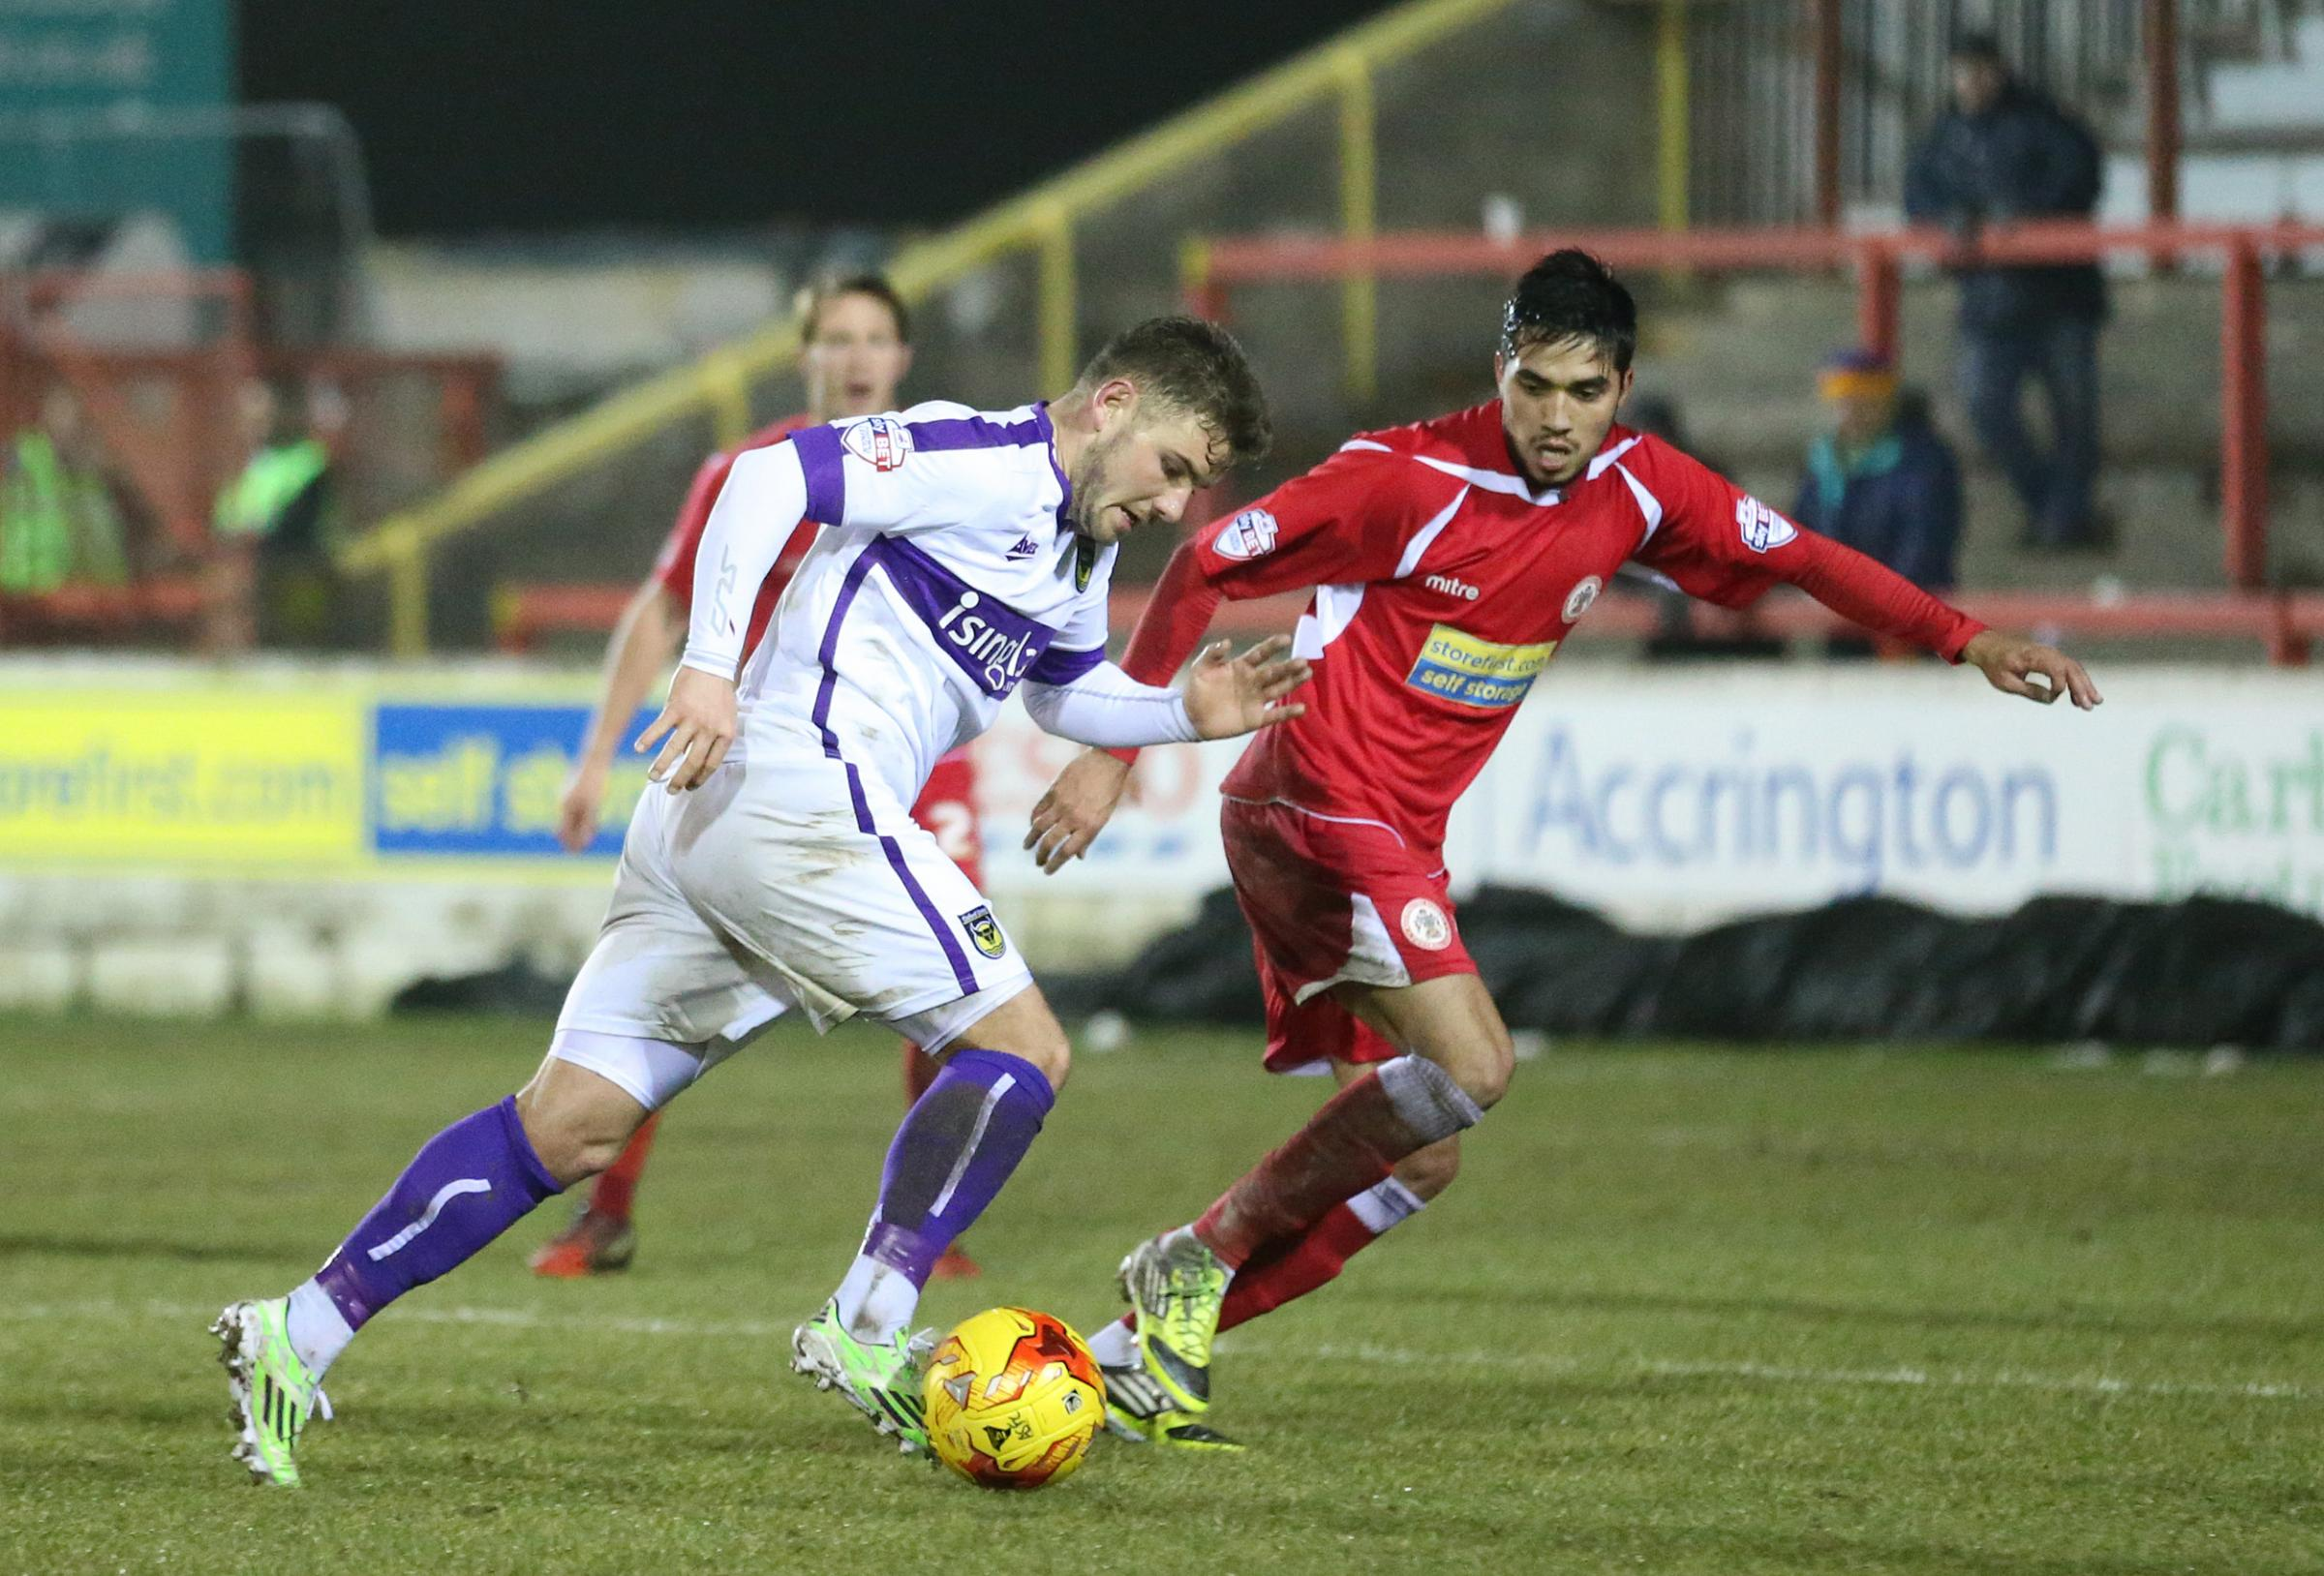 Alex MacDonald tries to force a way through the Accrington defence, but all in vain